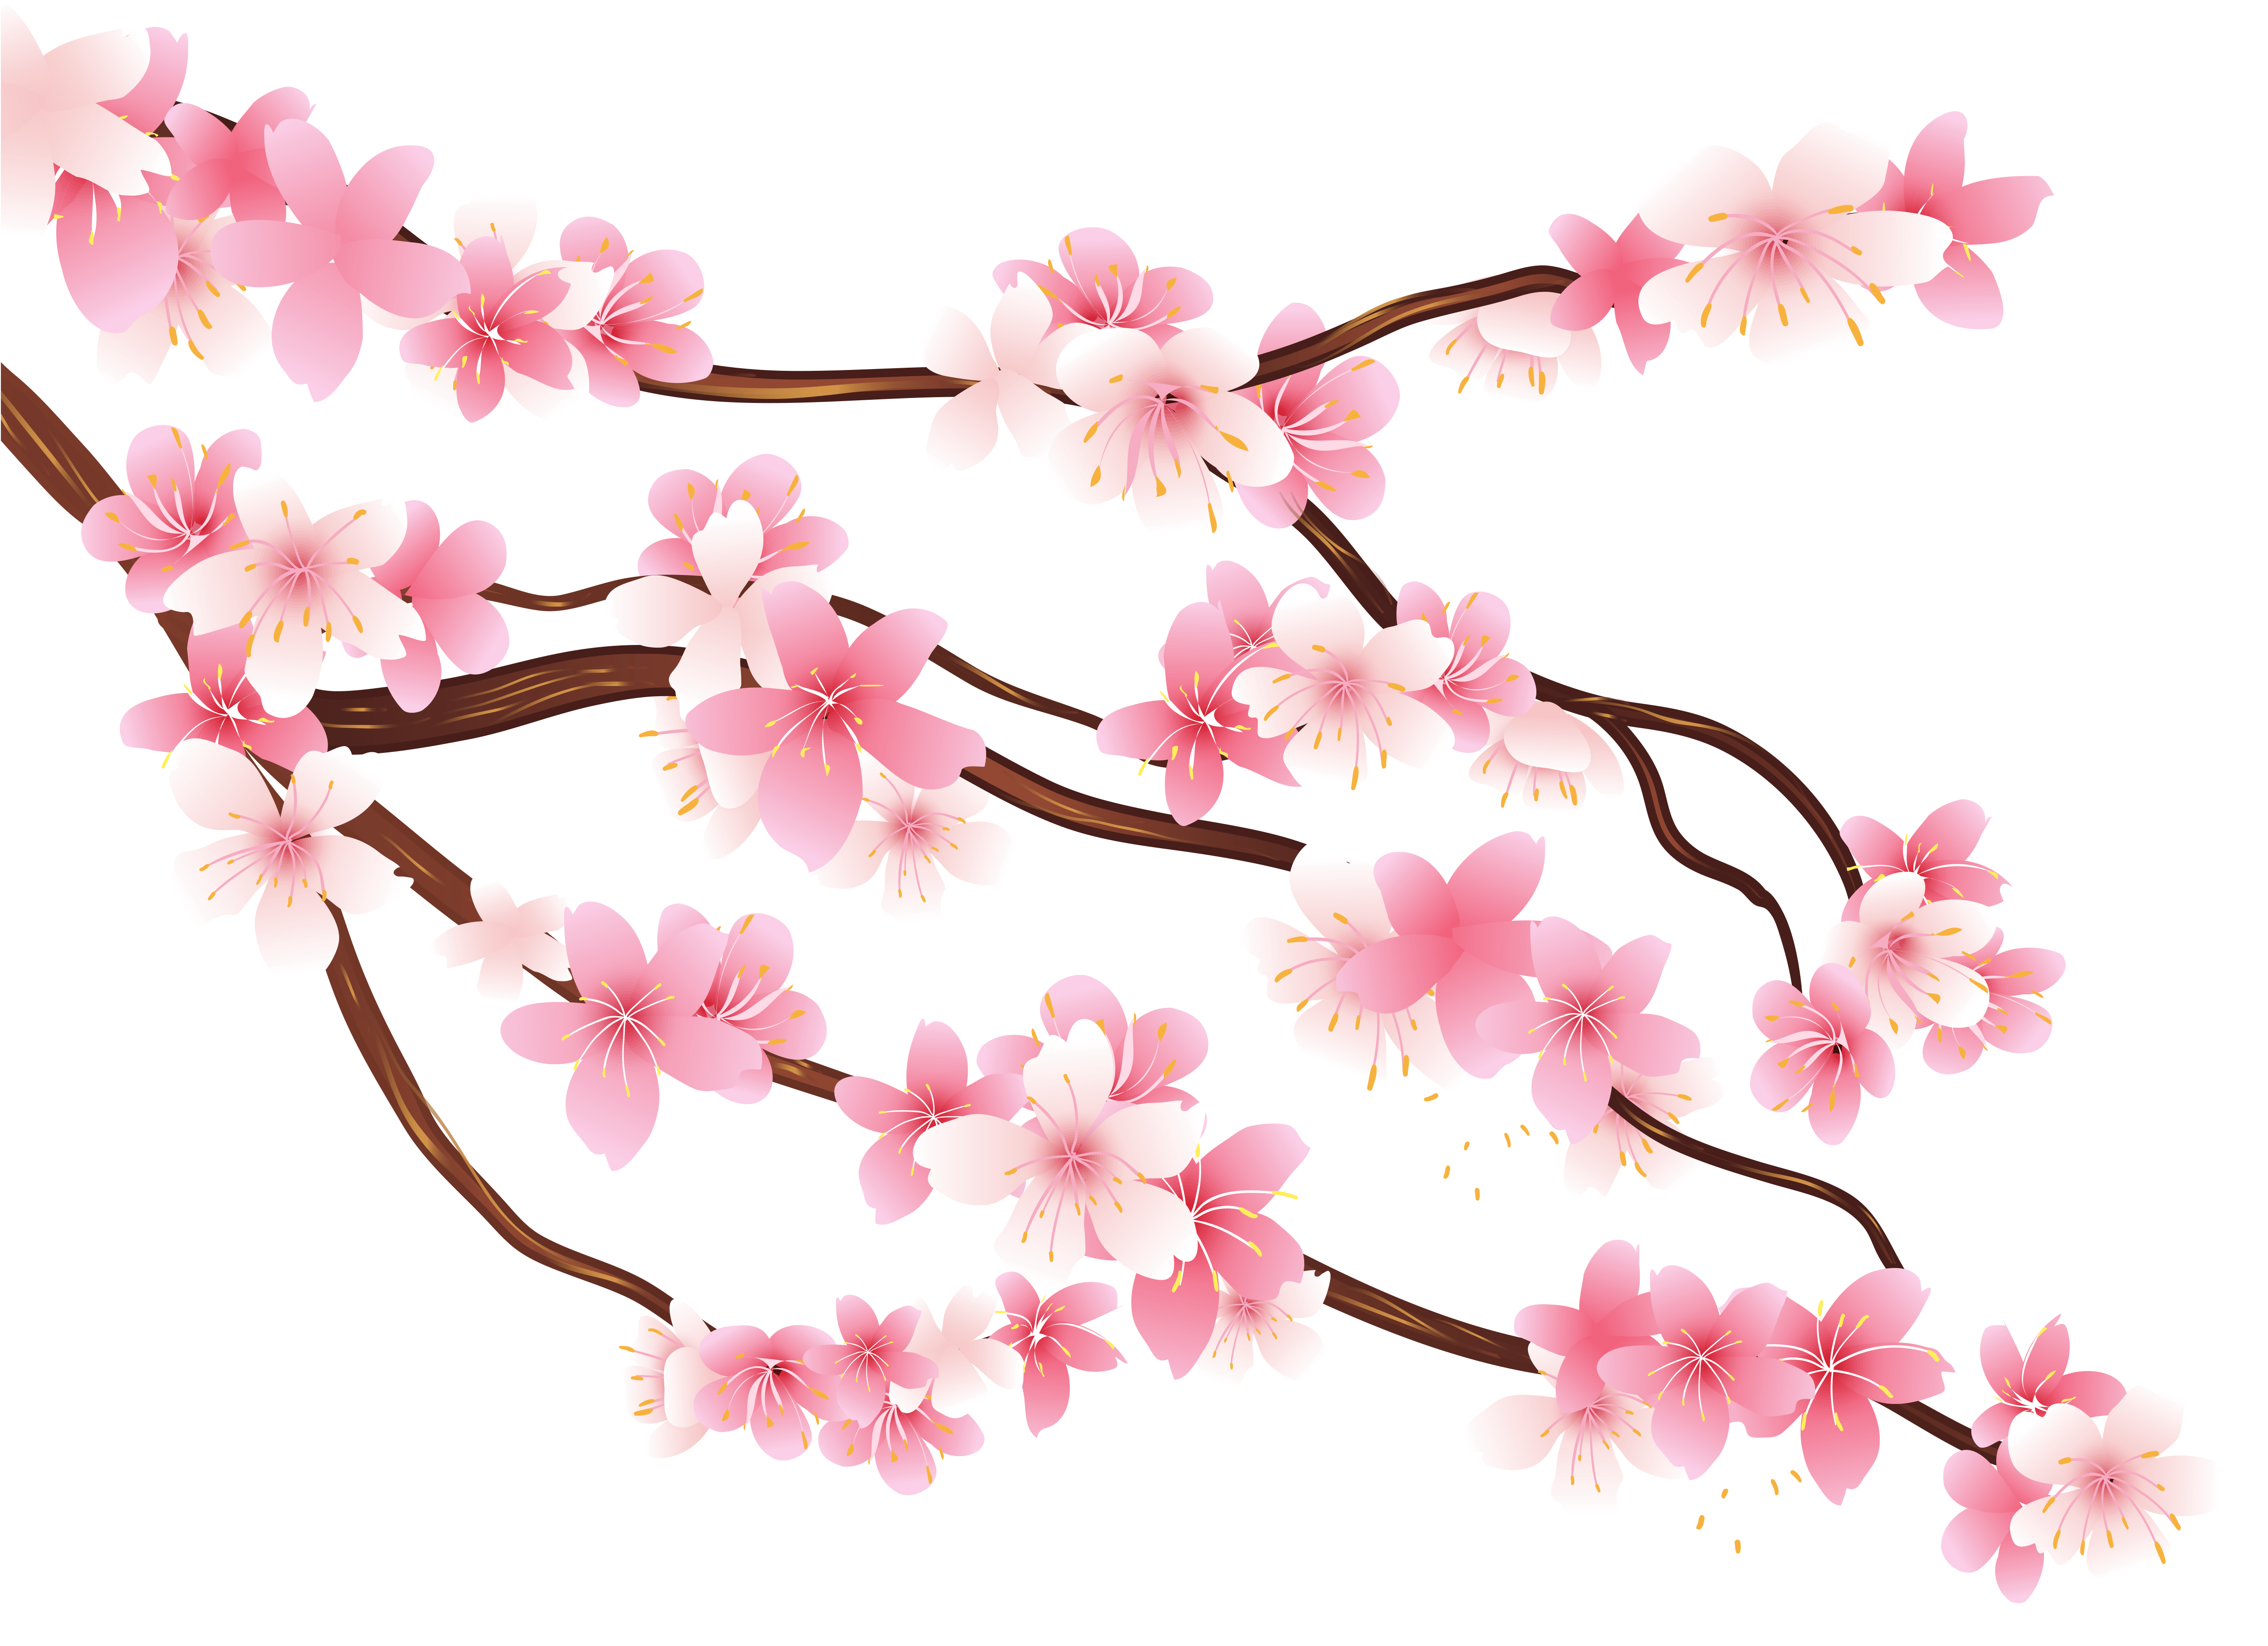 Mailbox clipart spring. Pink branch png image